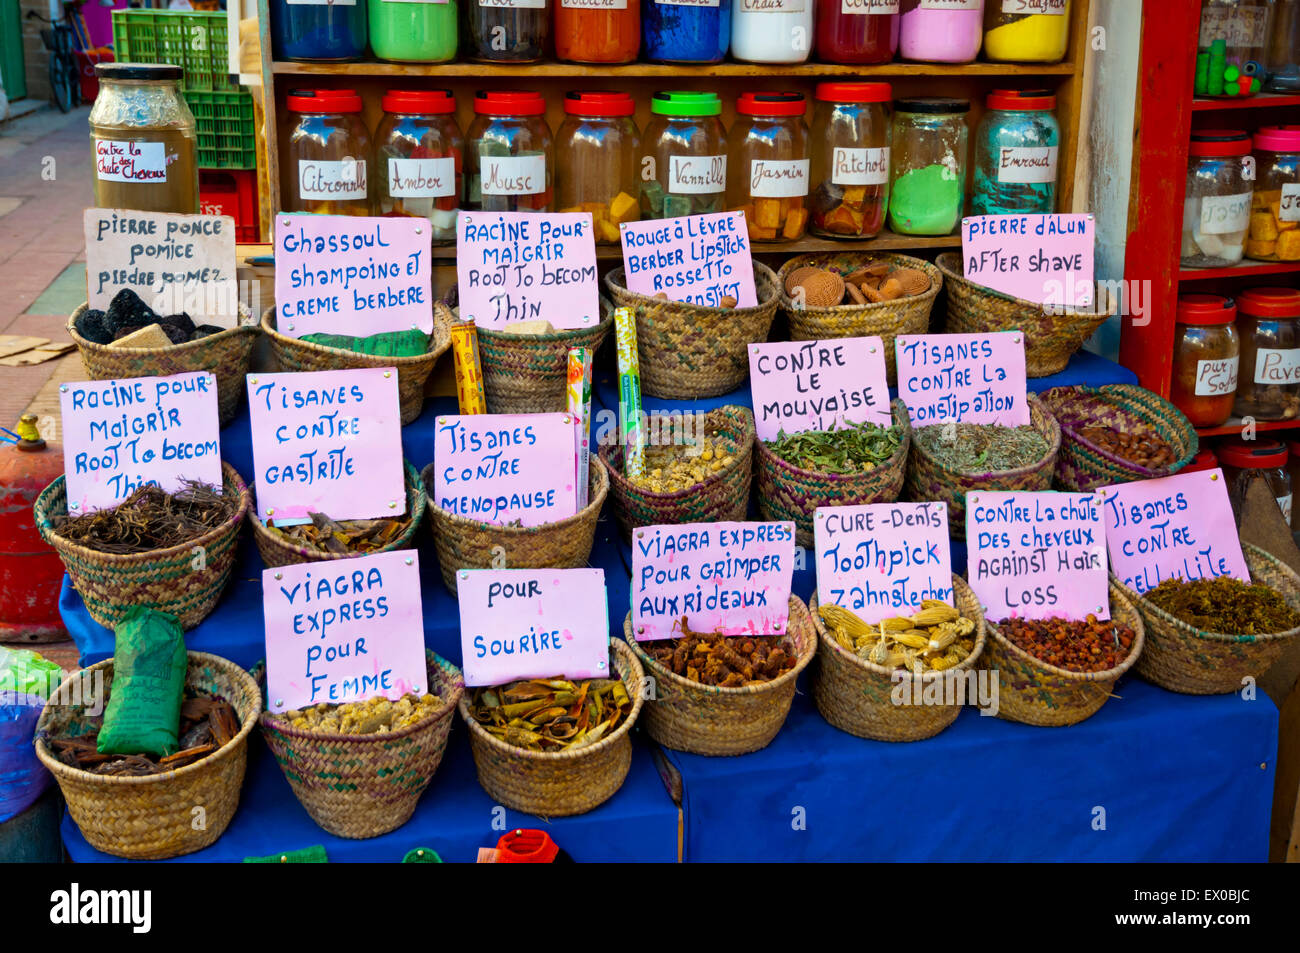 Herbal medicines and remedies, Spice souq, Mellah, Essaouira, Atlantic coast, Morocco, northern Africa - Stock Image